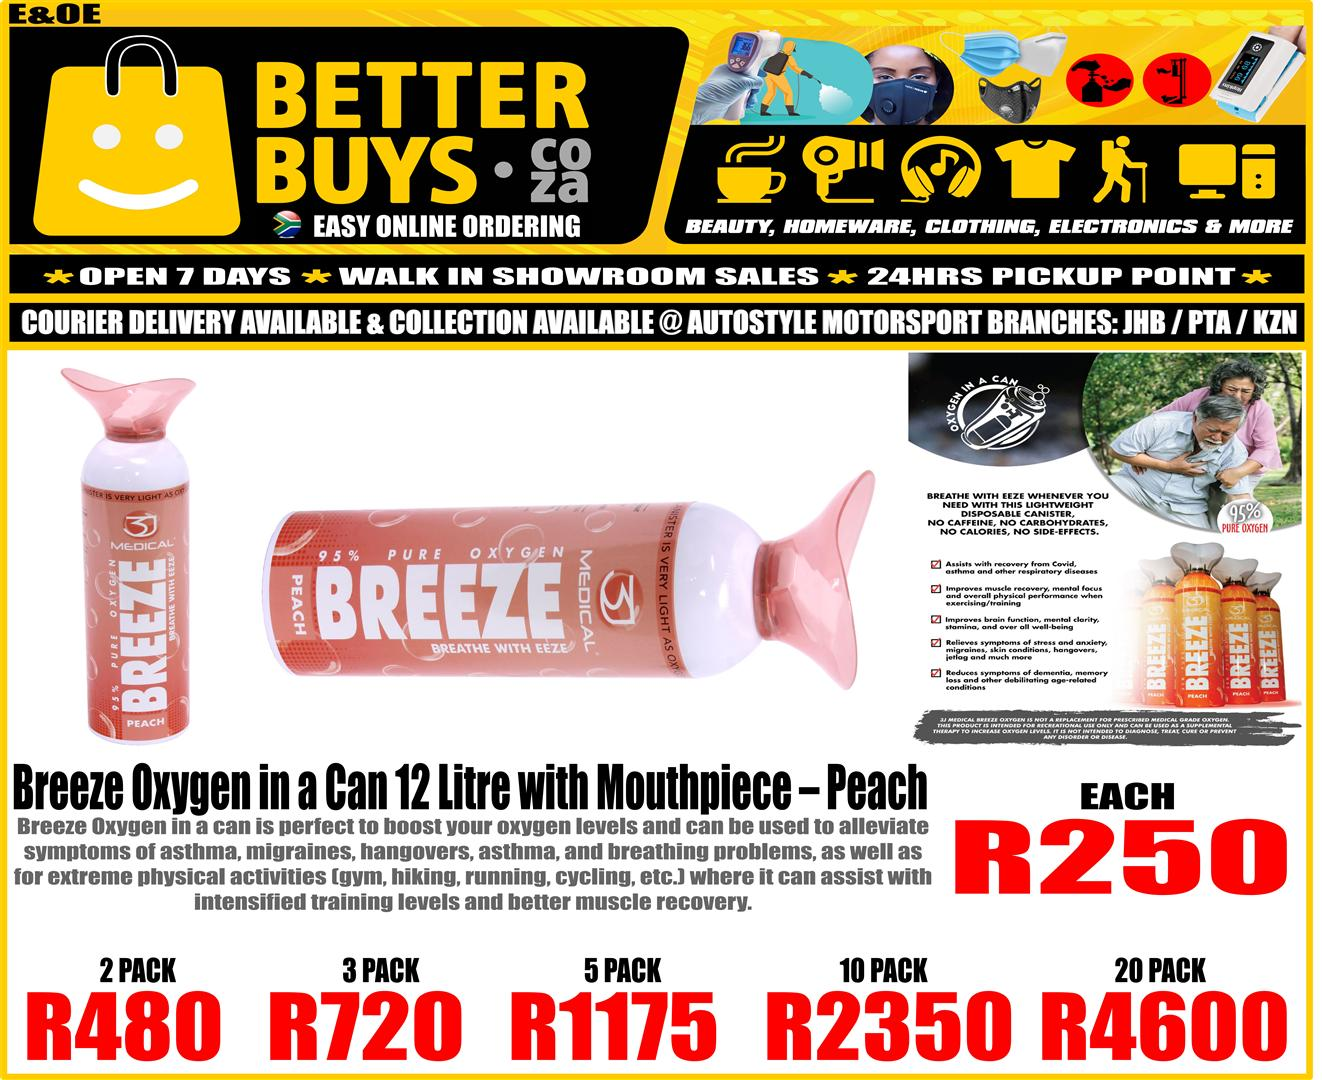 Breeze Oxygen in a Can 12 Litre with Mouthpiece – Peach